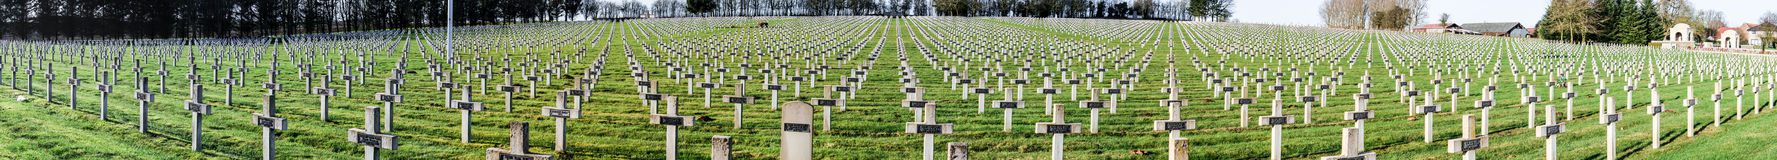 Panorama Cemetery world war one in France Vimy La Targette. Stock Photos